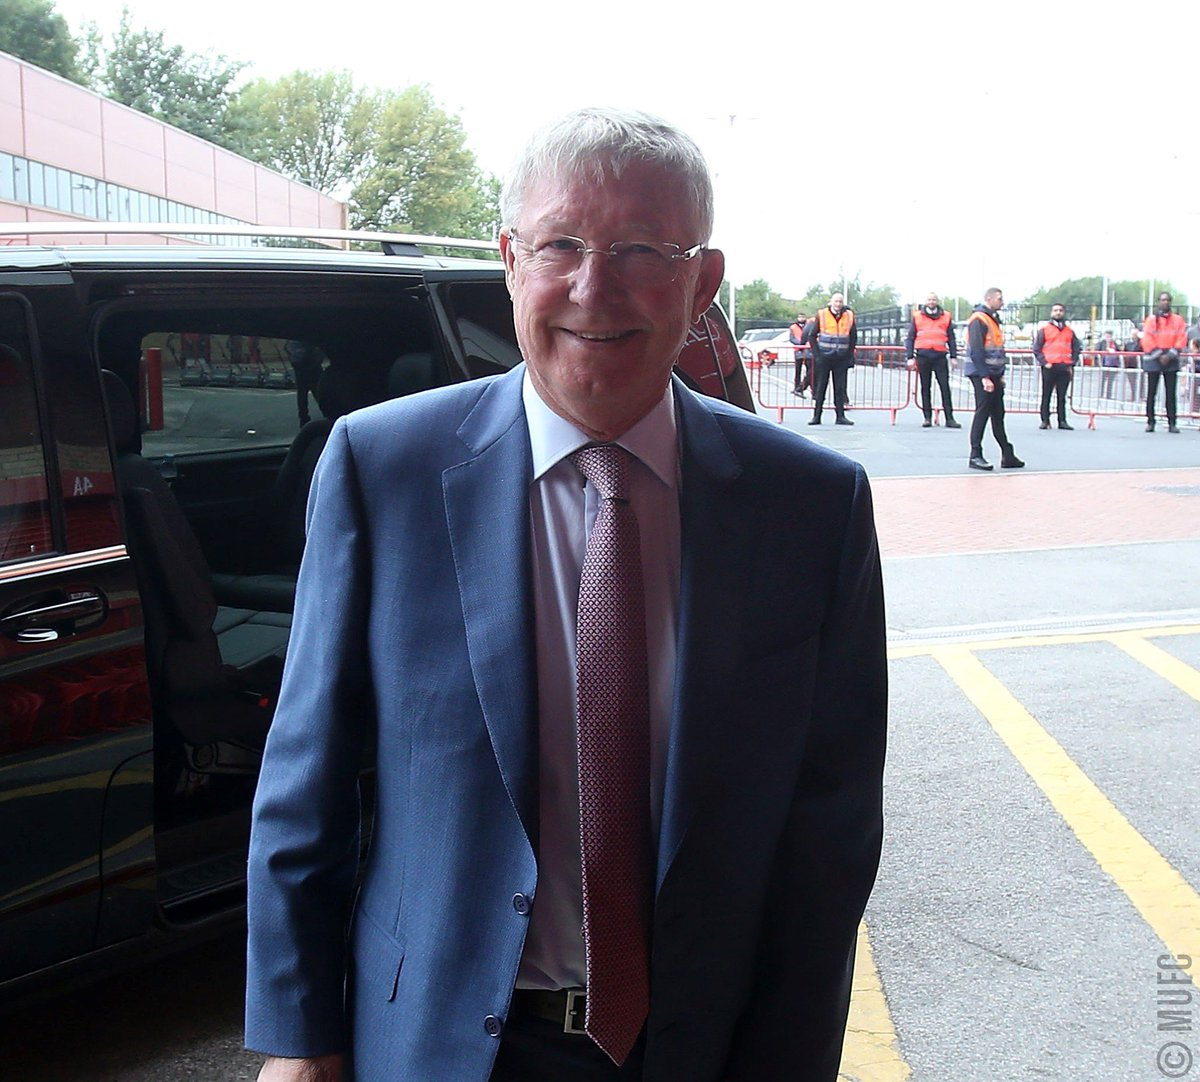 Welcome back to Old Trafford, Sir Alex. #MUFC